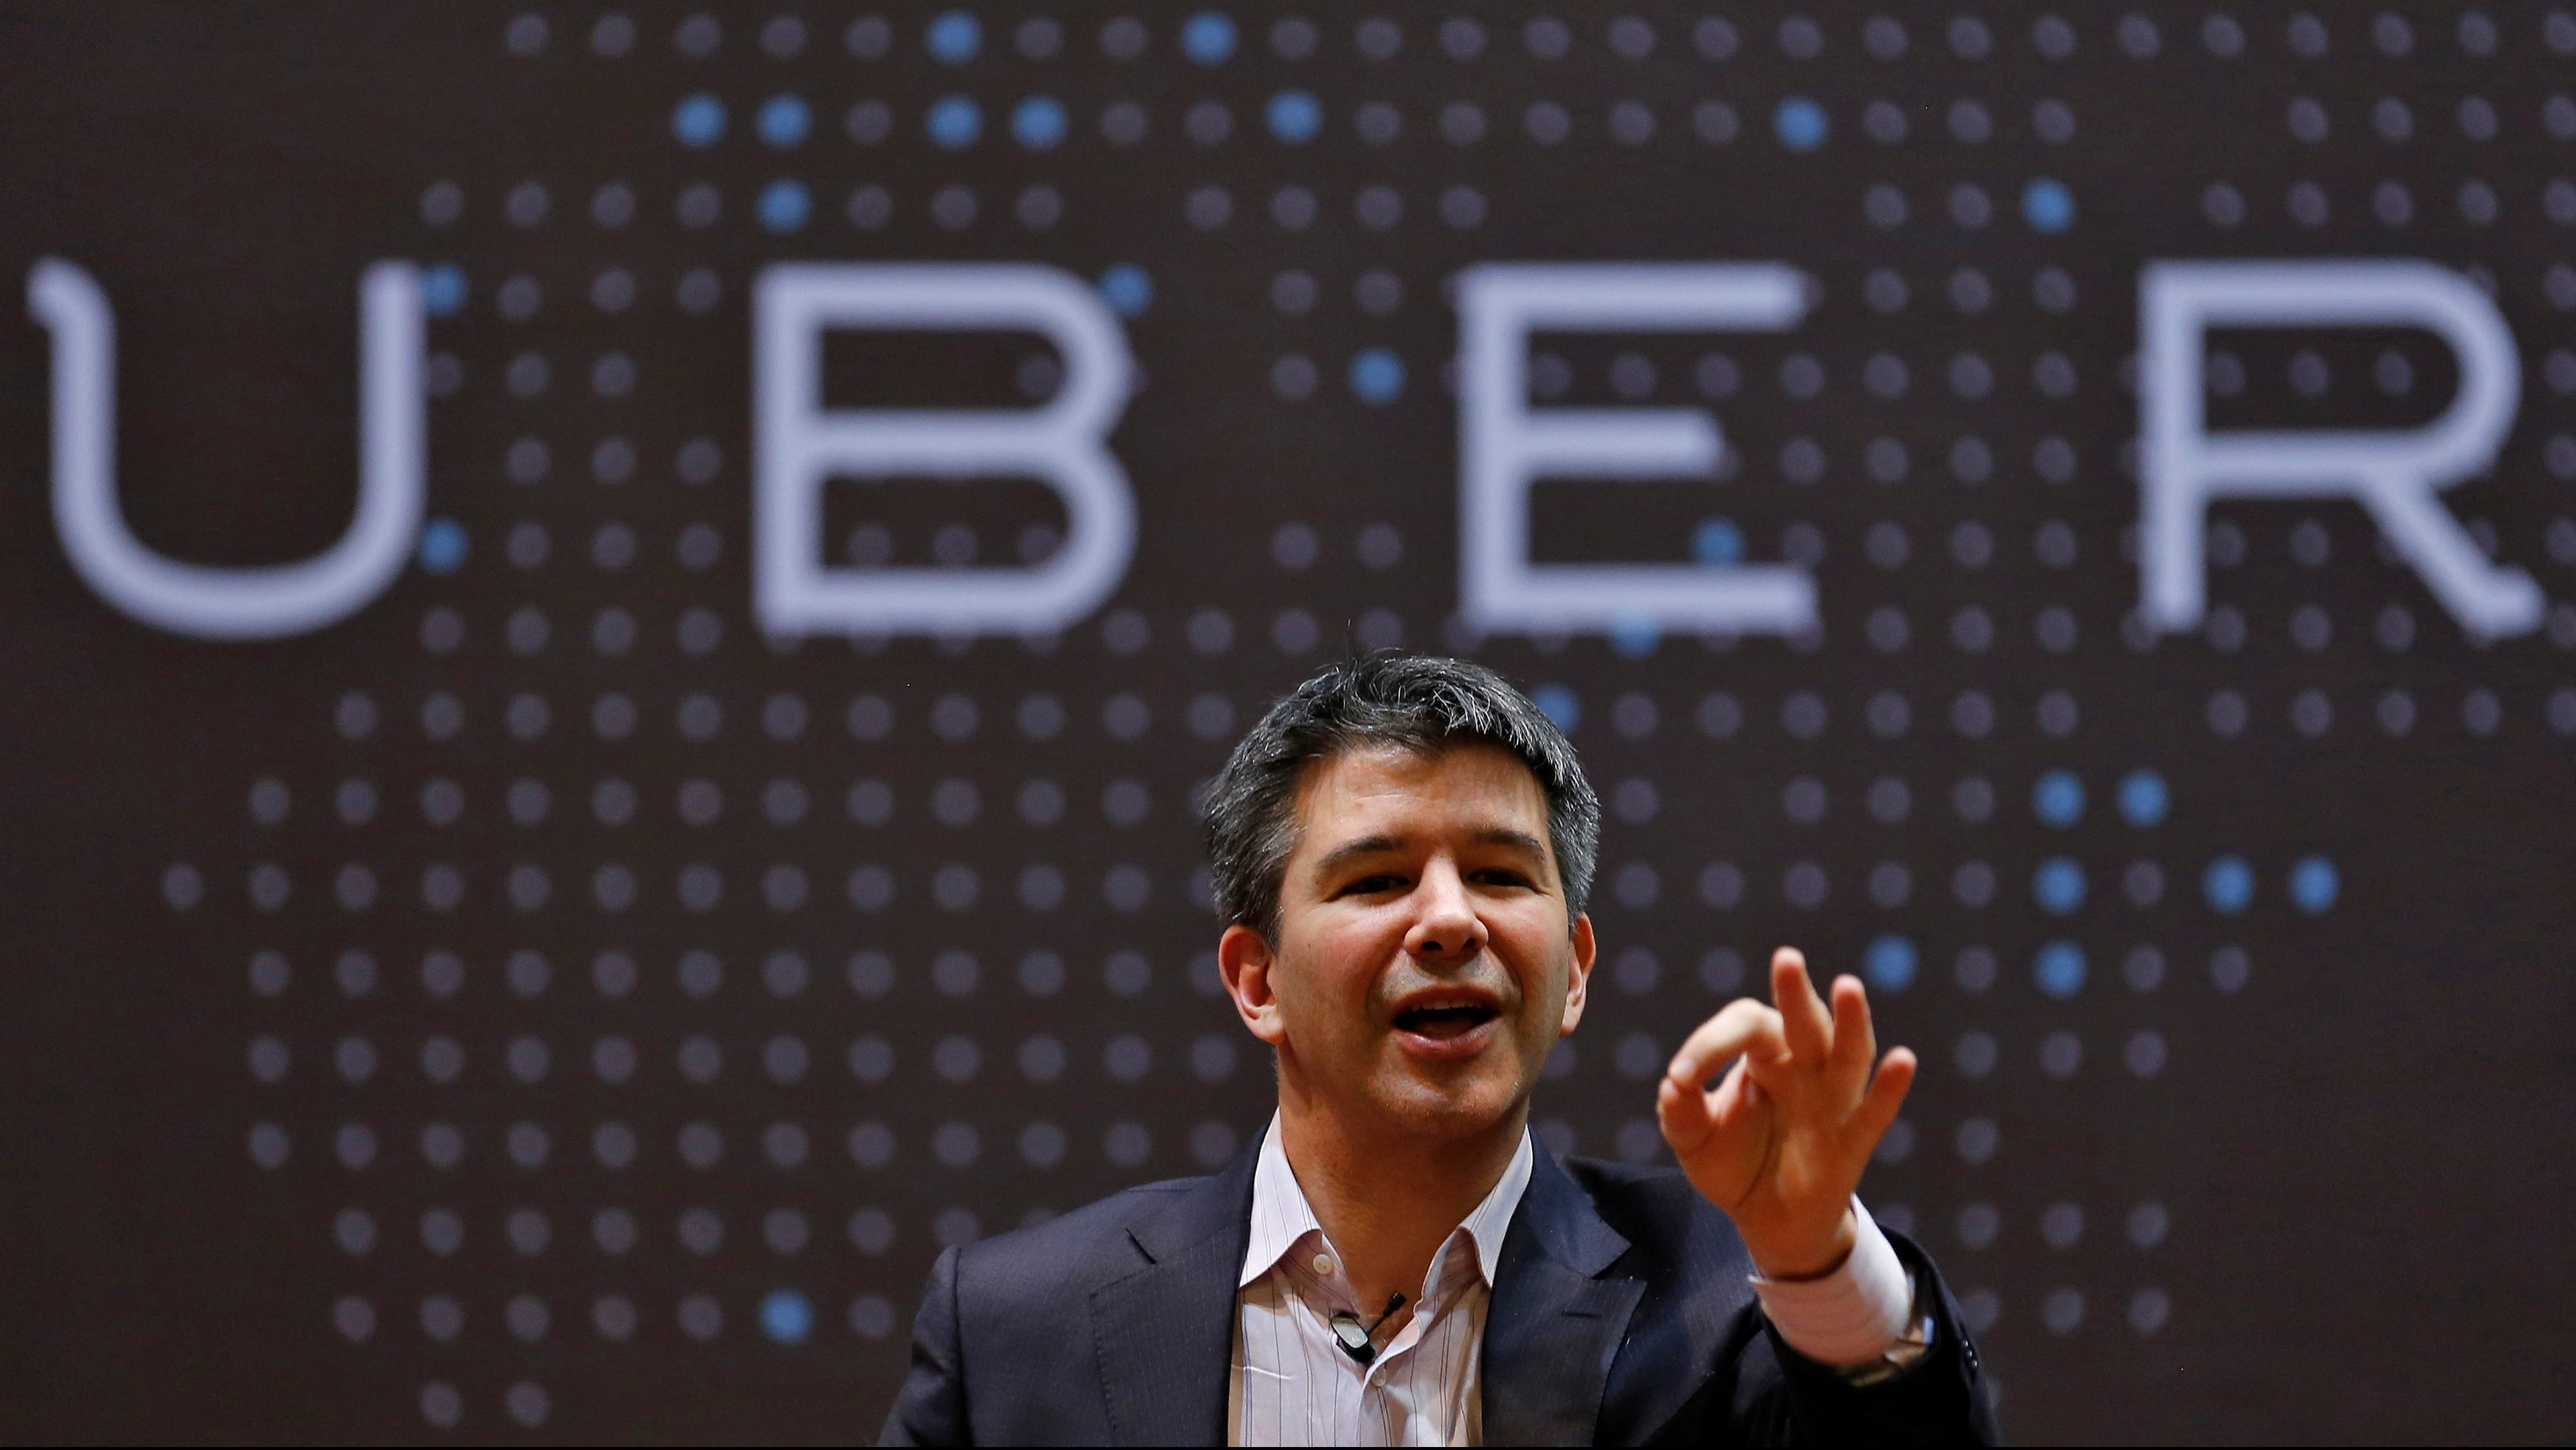 Uber CEO Travis Kalanick speaks to students during an interaction at the Indian Institute of Technology in Mumbai.